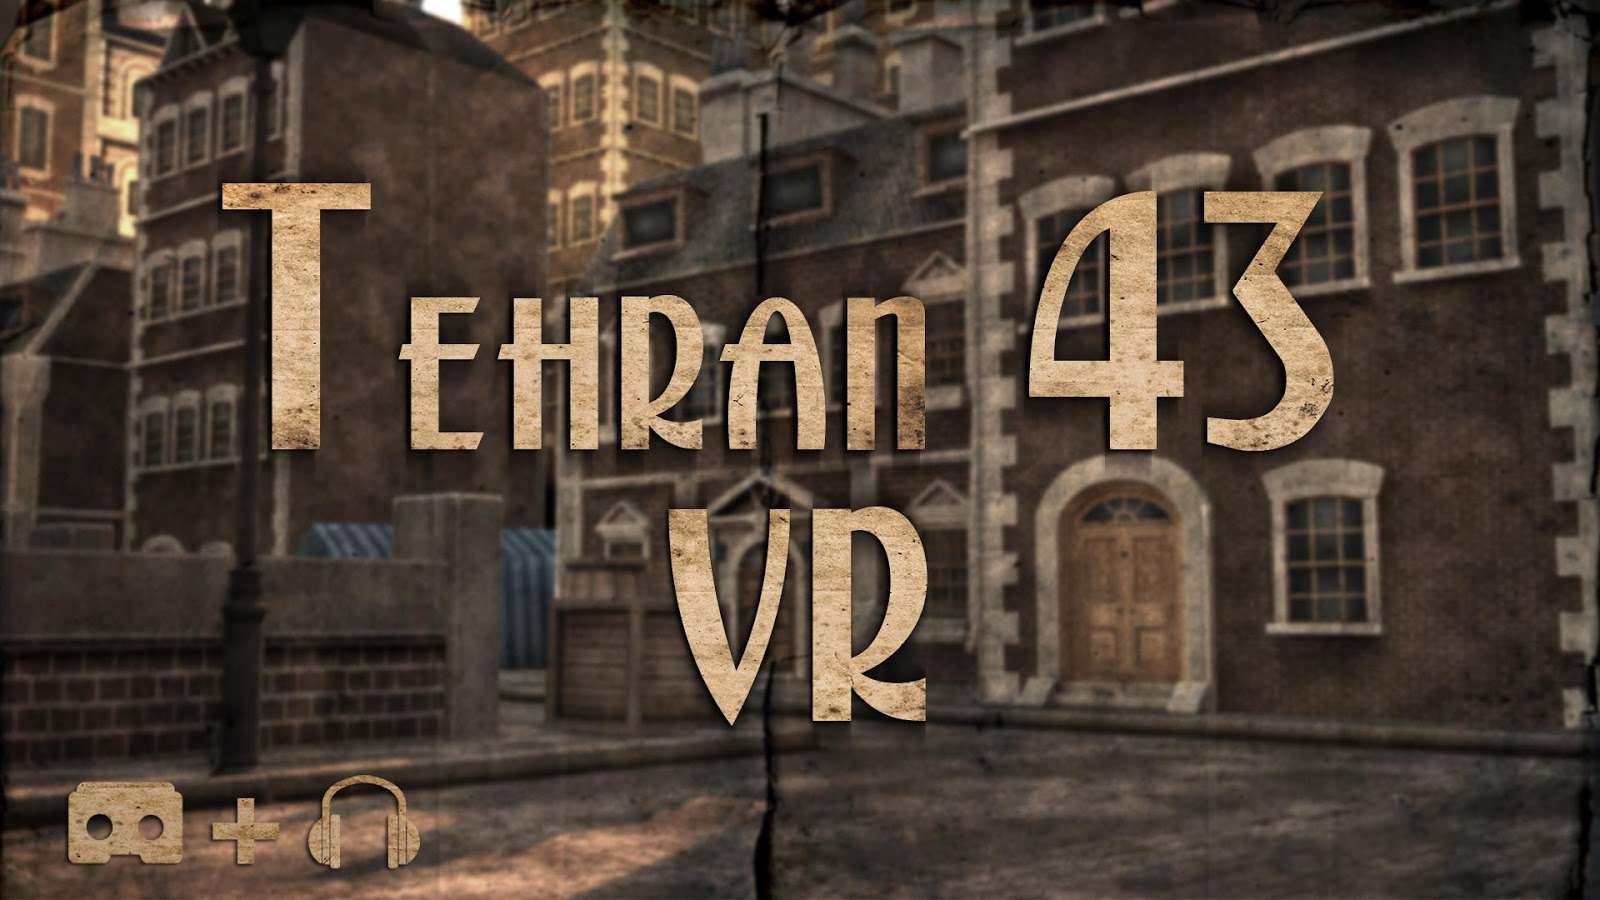 VR Cardboard Game - Tehran 43- screenshot